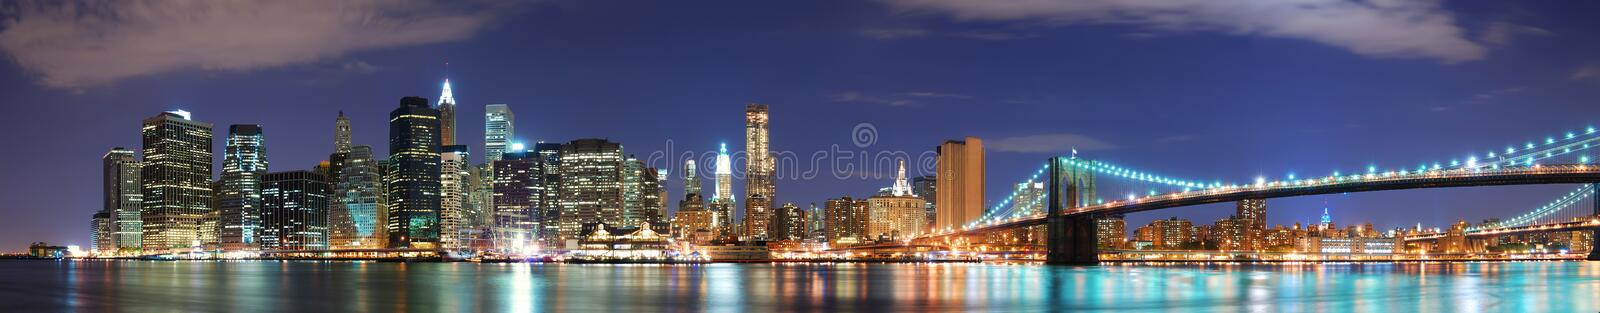 Panorama dell'orizzonte di New York City Manhattan fotografia stock